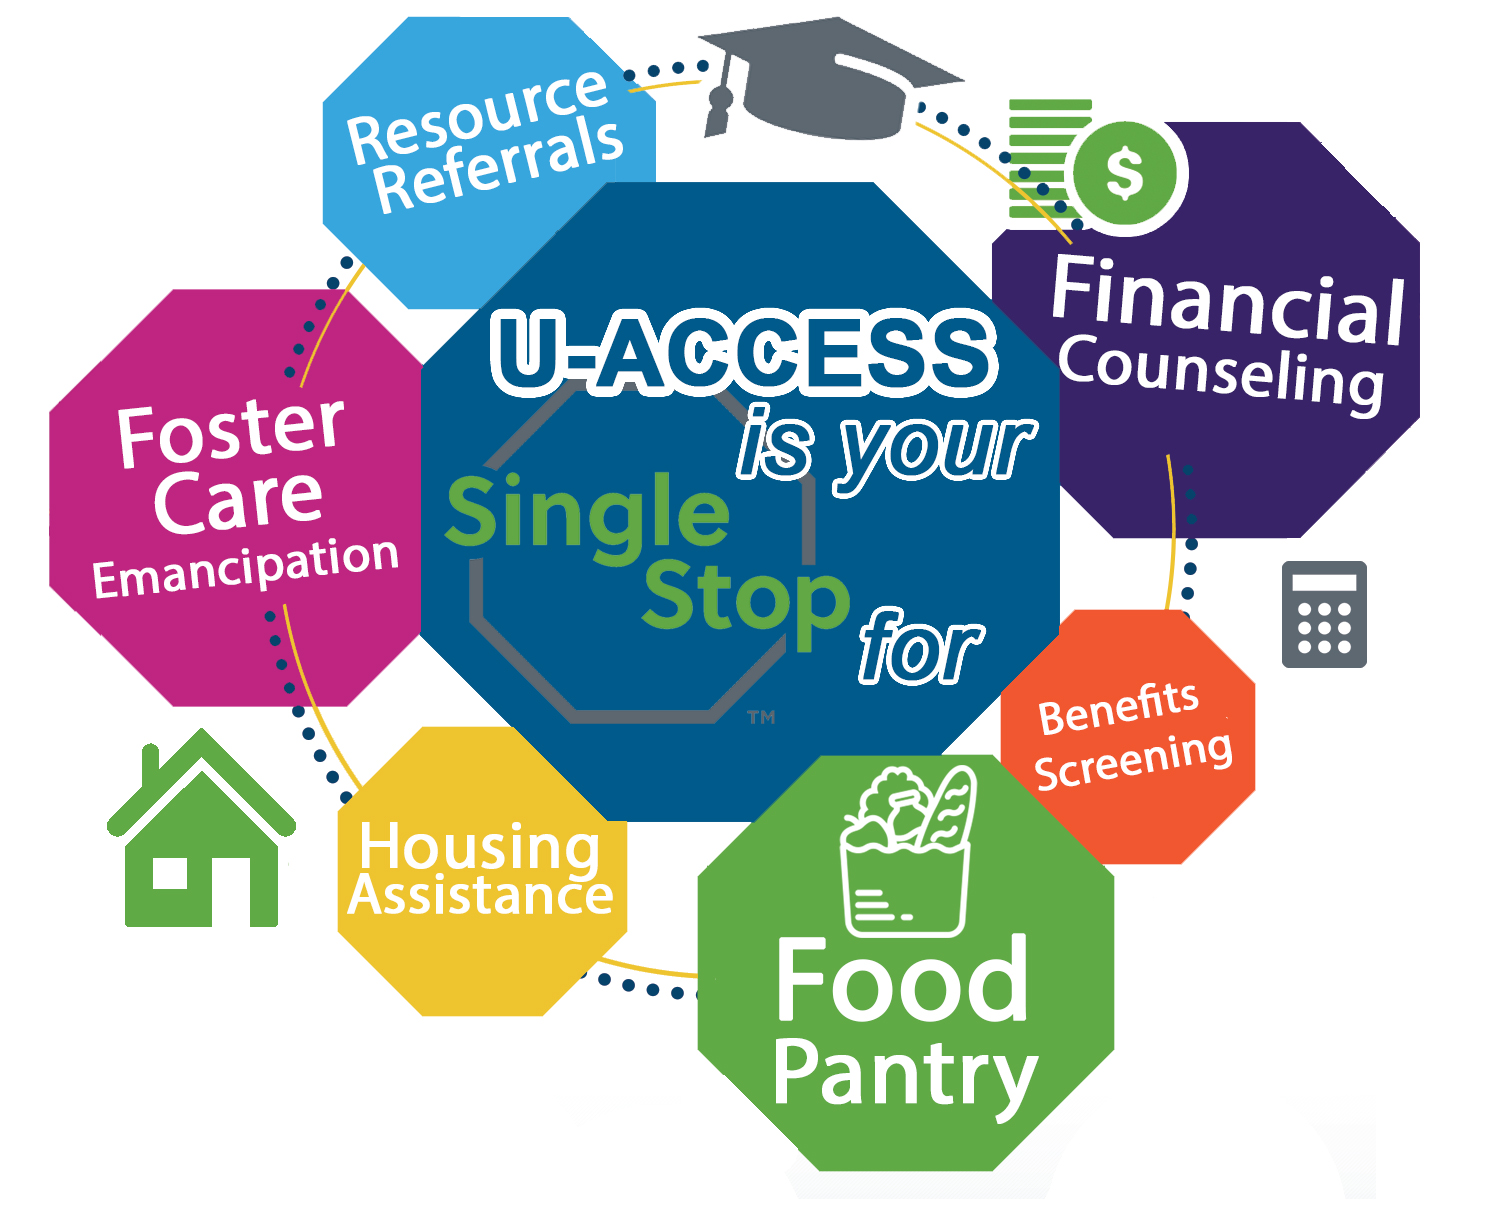 U-ACCESS is your Single Stop for many services.